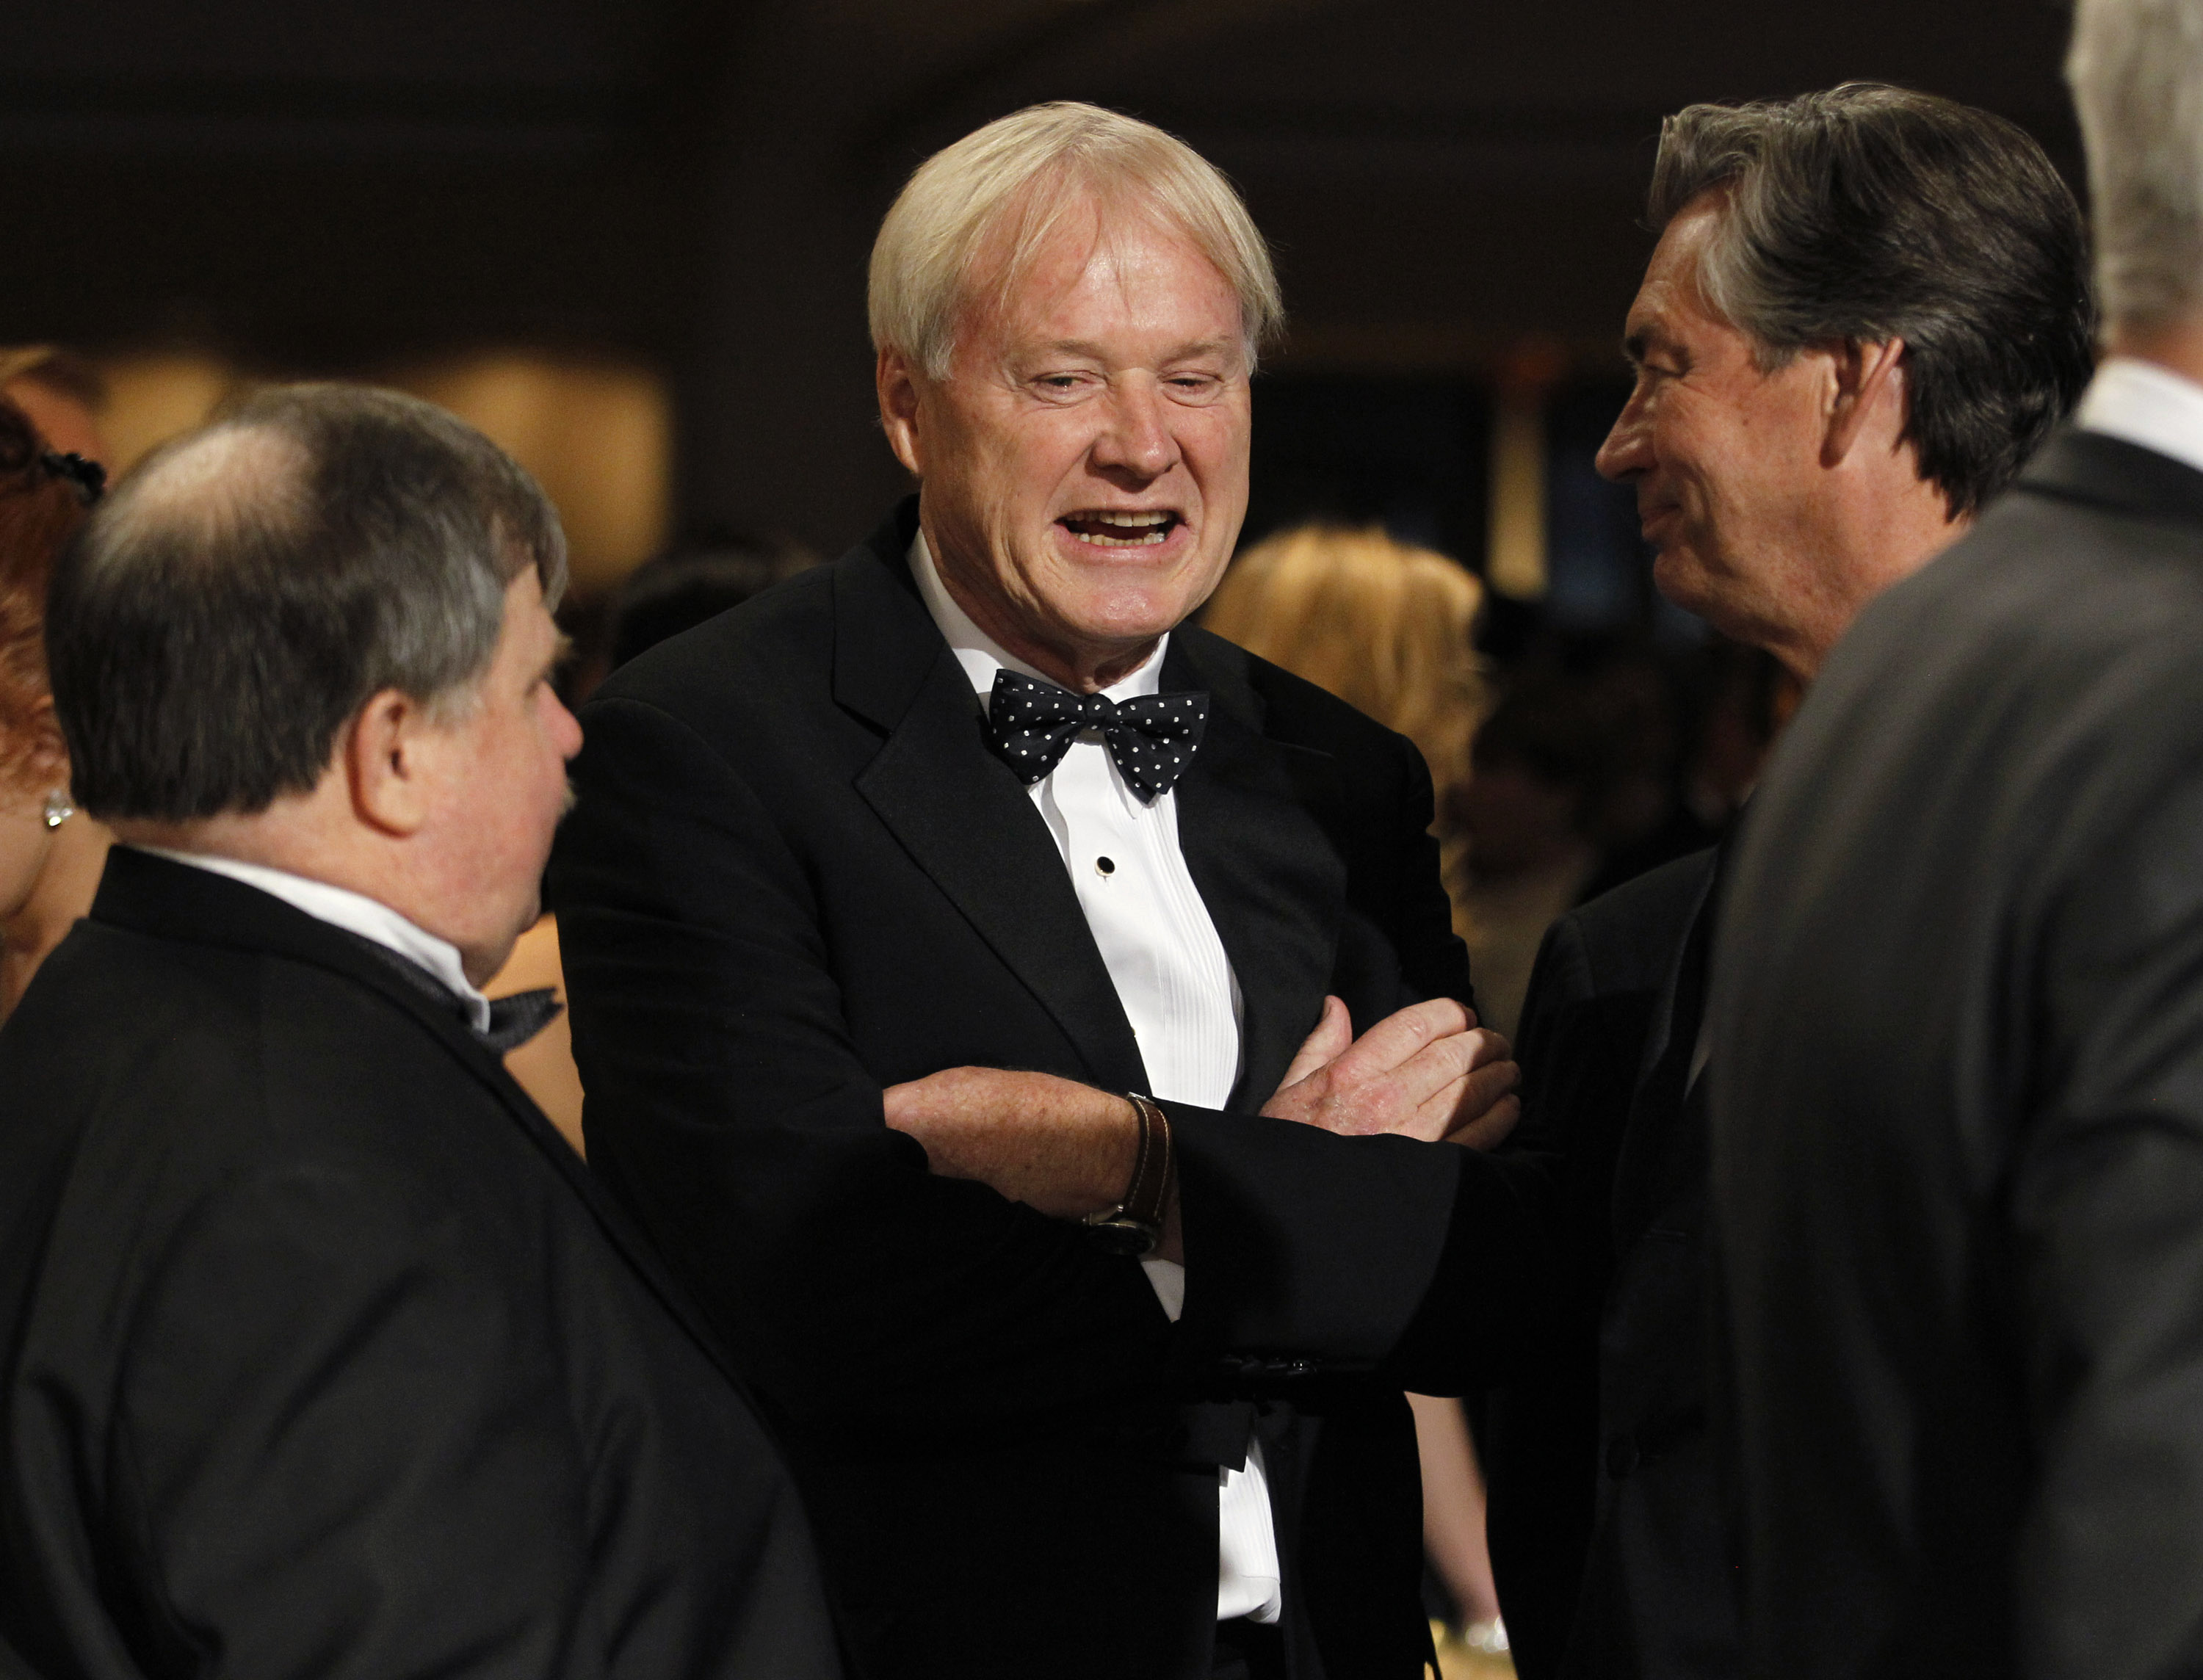 Hardball host Chris Matthews was in Palm Beach for the wedding and has since interviewed Trump multiple times on his presidential candidacy. (Photo: Reuters)